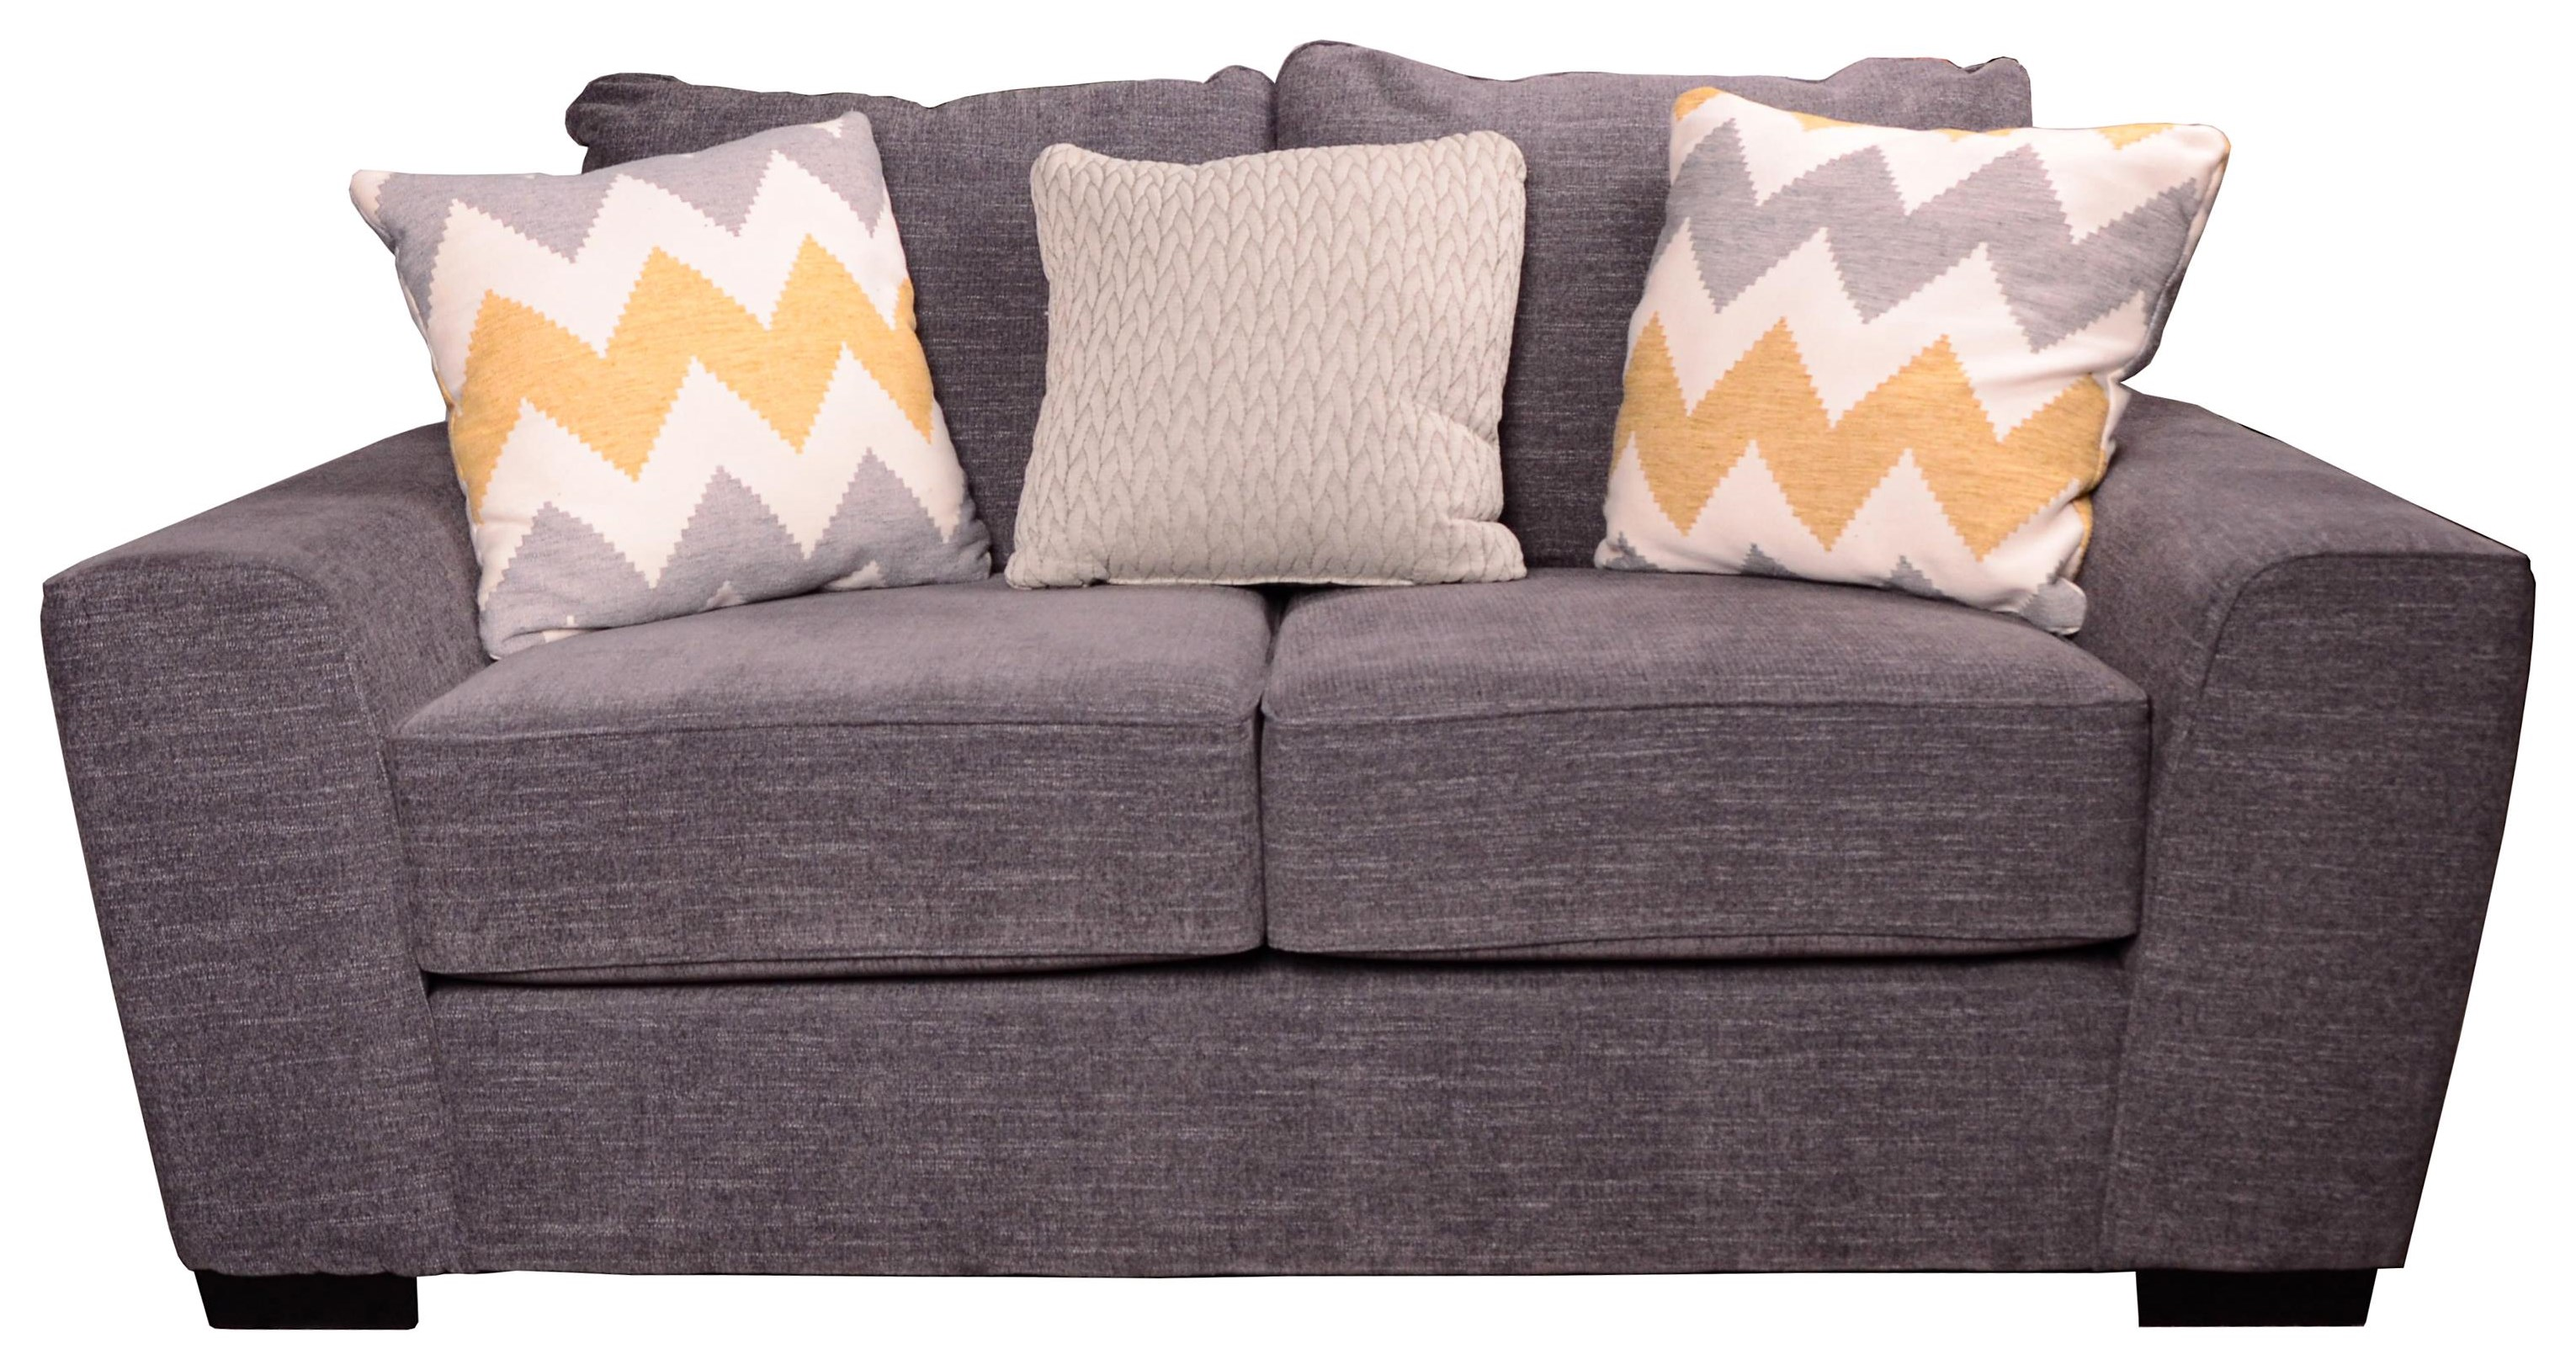 Desperado Curious Charcoal Loveseat by Michael Nicholas at Beck's Furniture